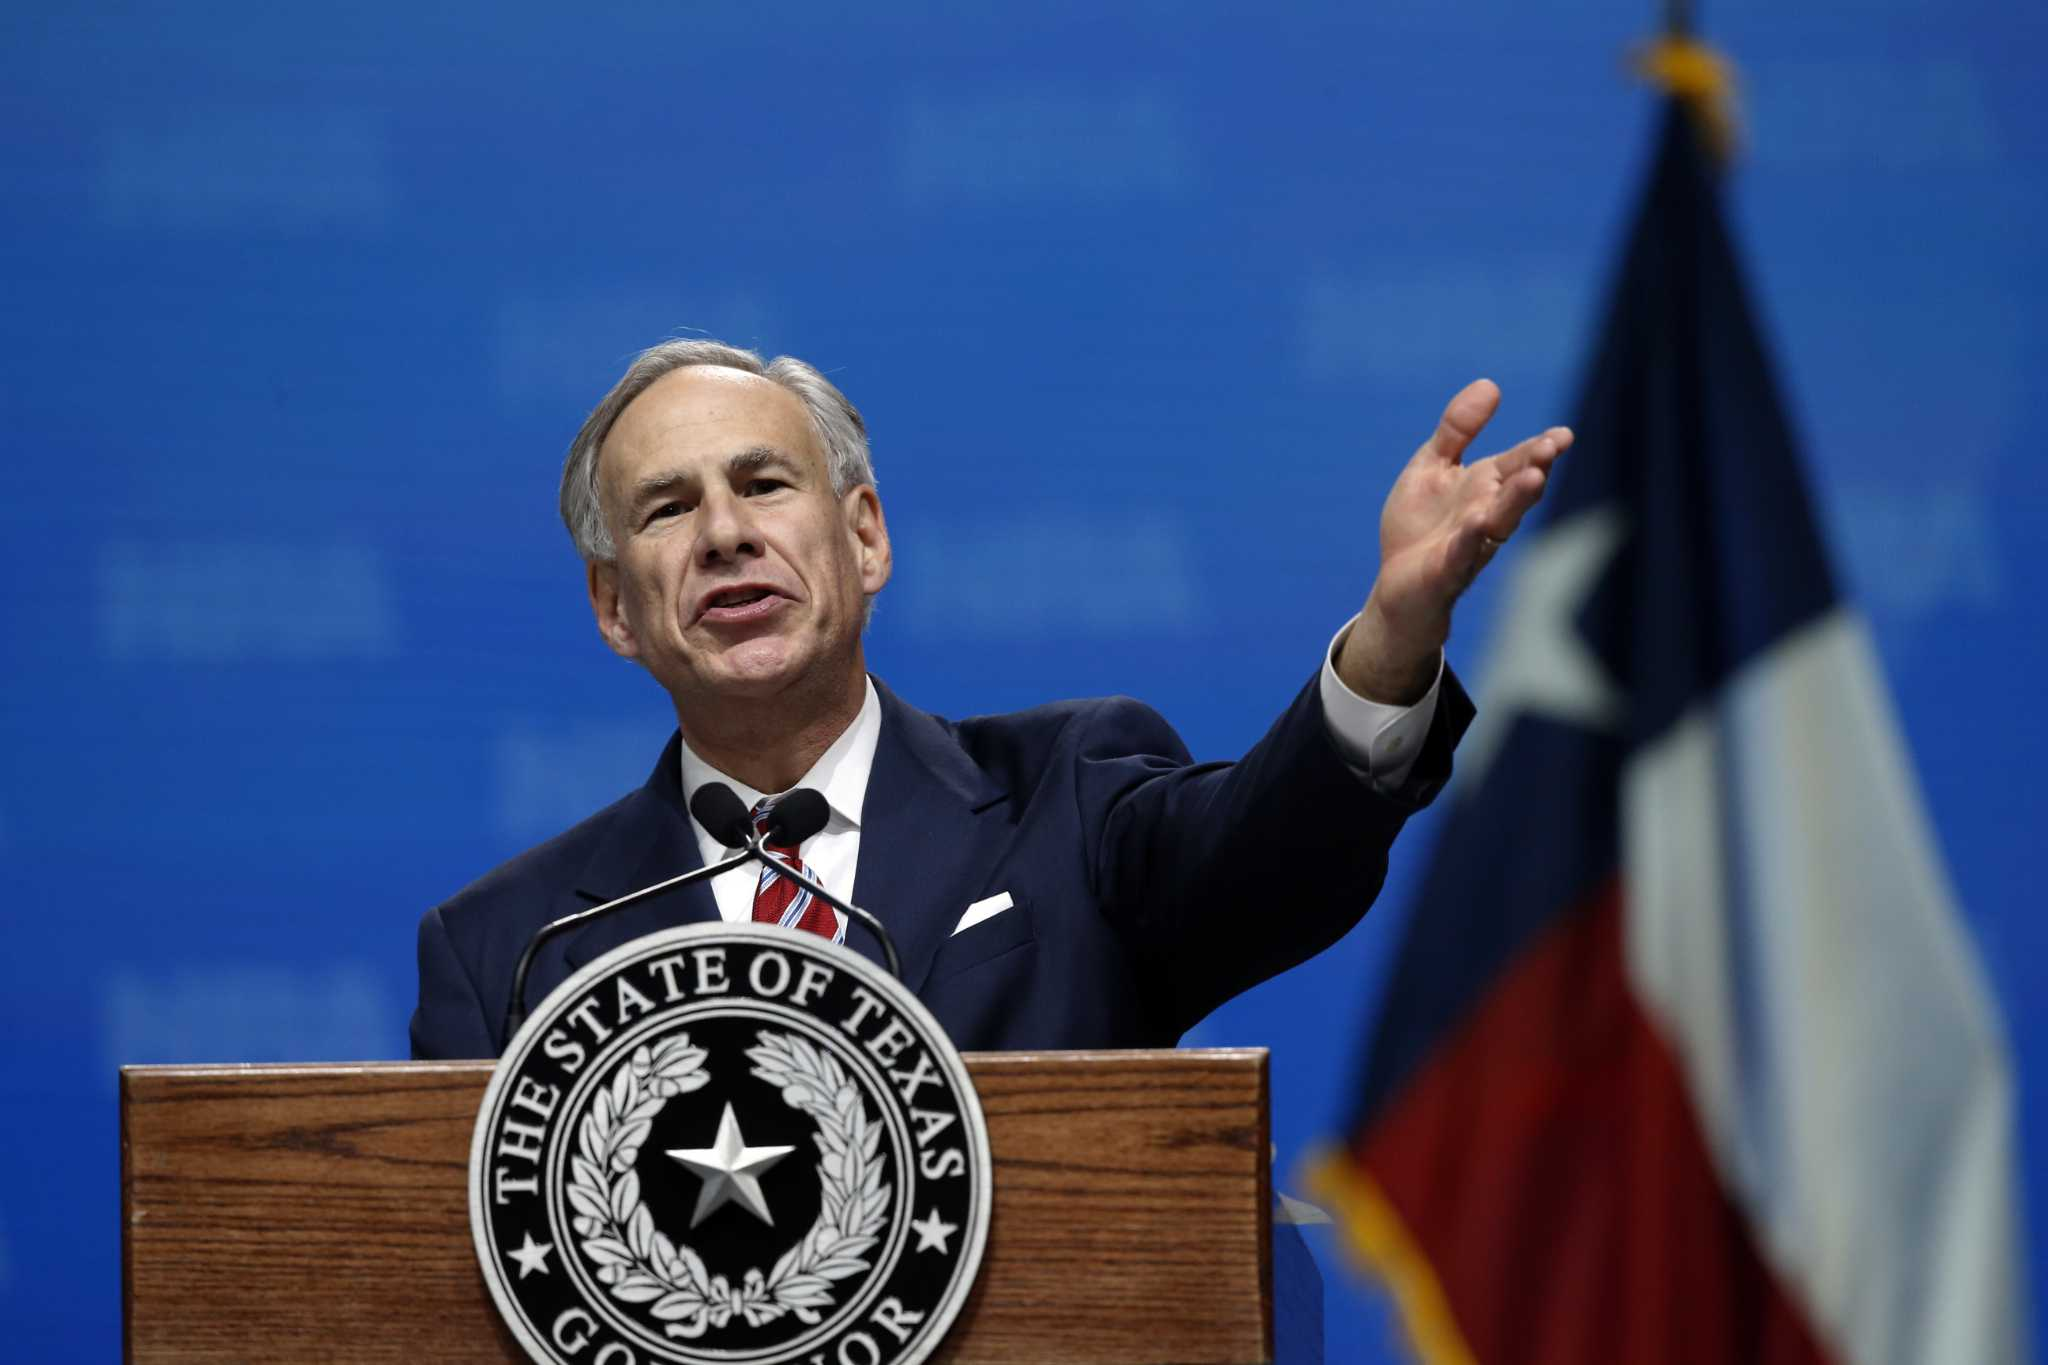 Texas governor to reject new refugees, first under Trump